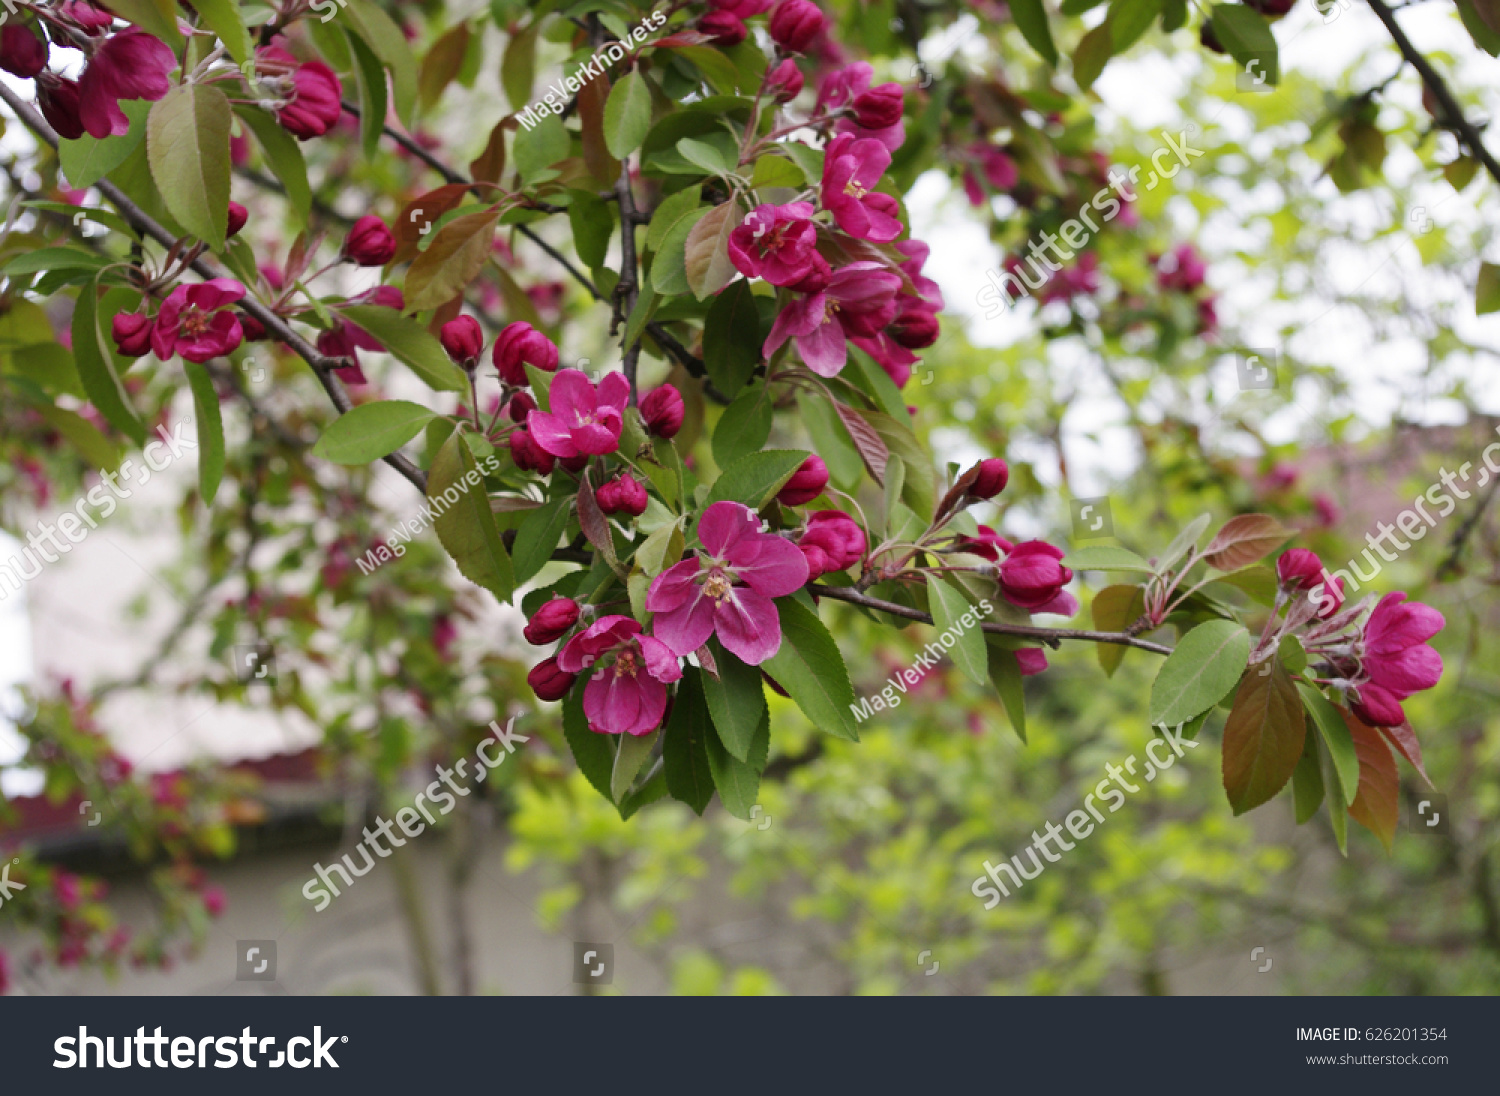 Blooming Apple Tree Apple Tree Branch Covered With Pink Flowers And